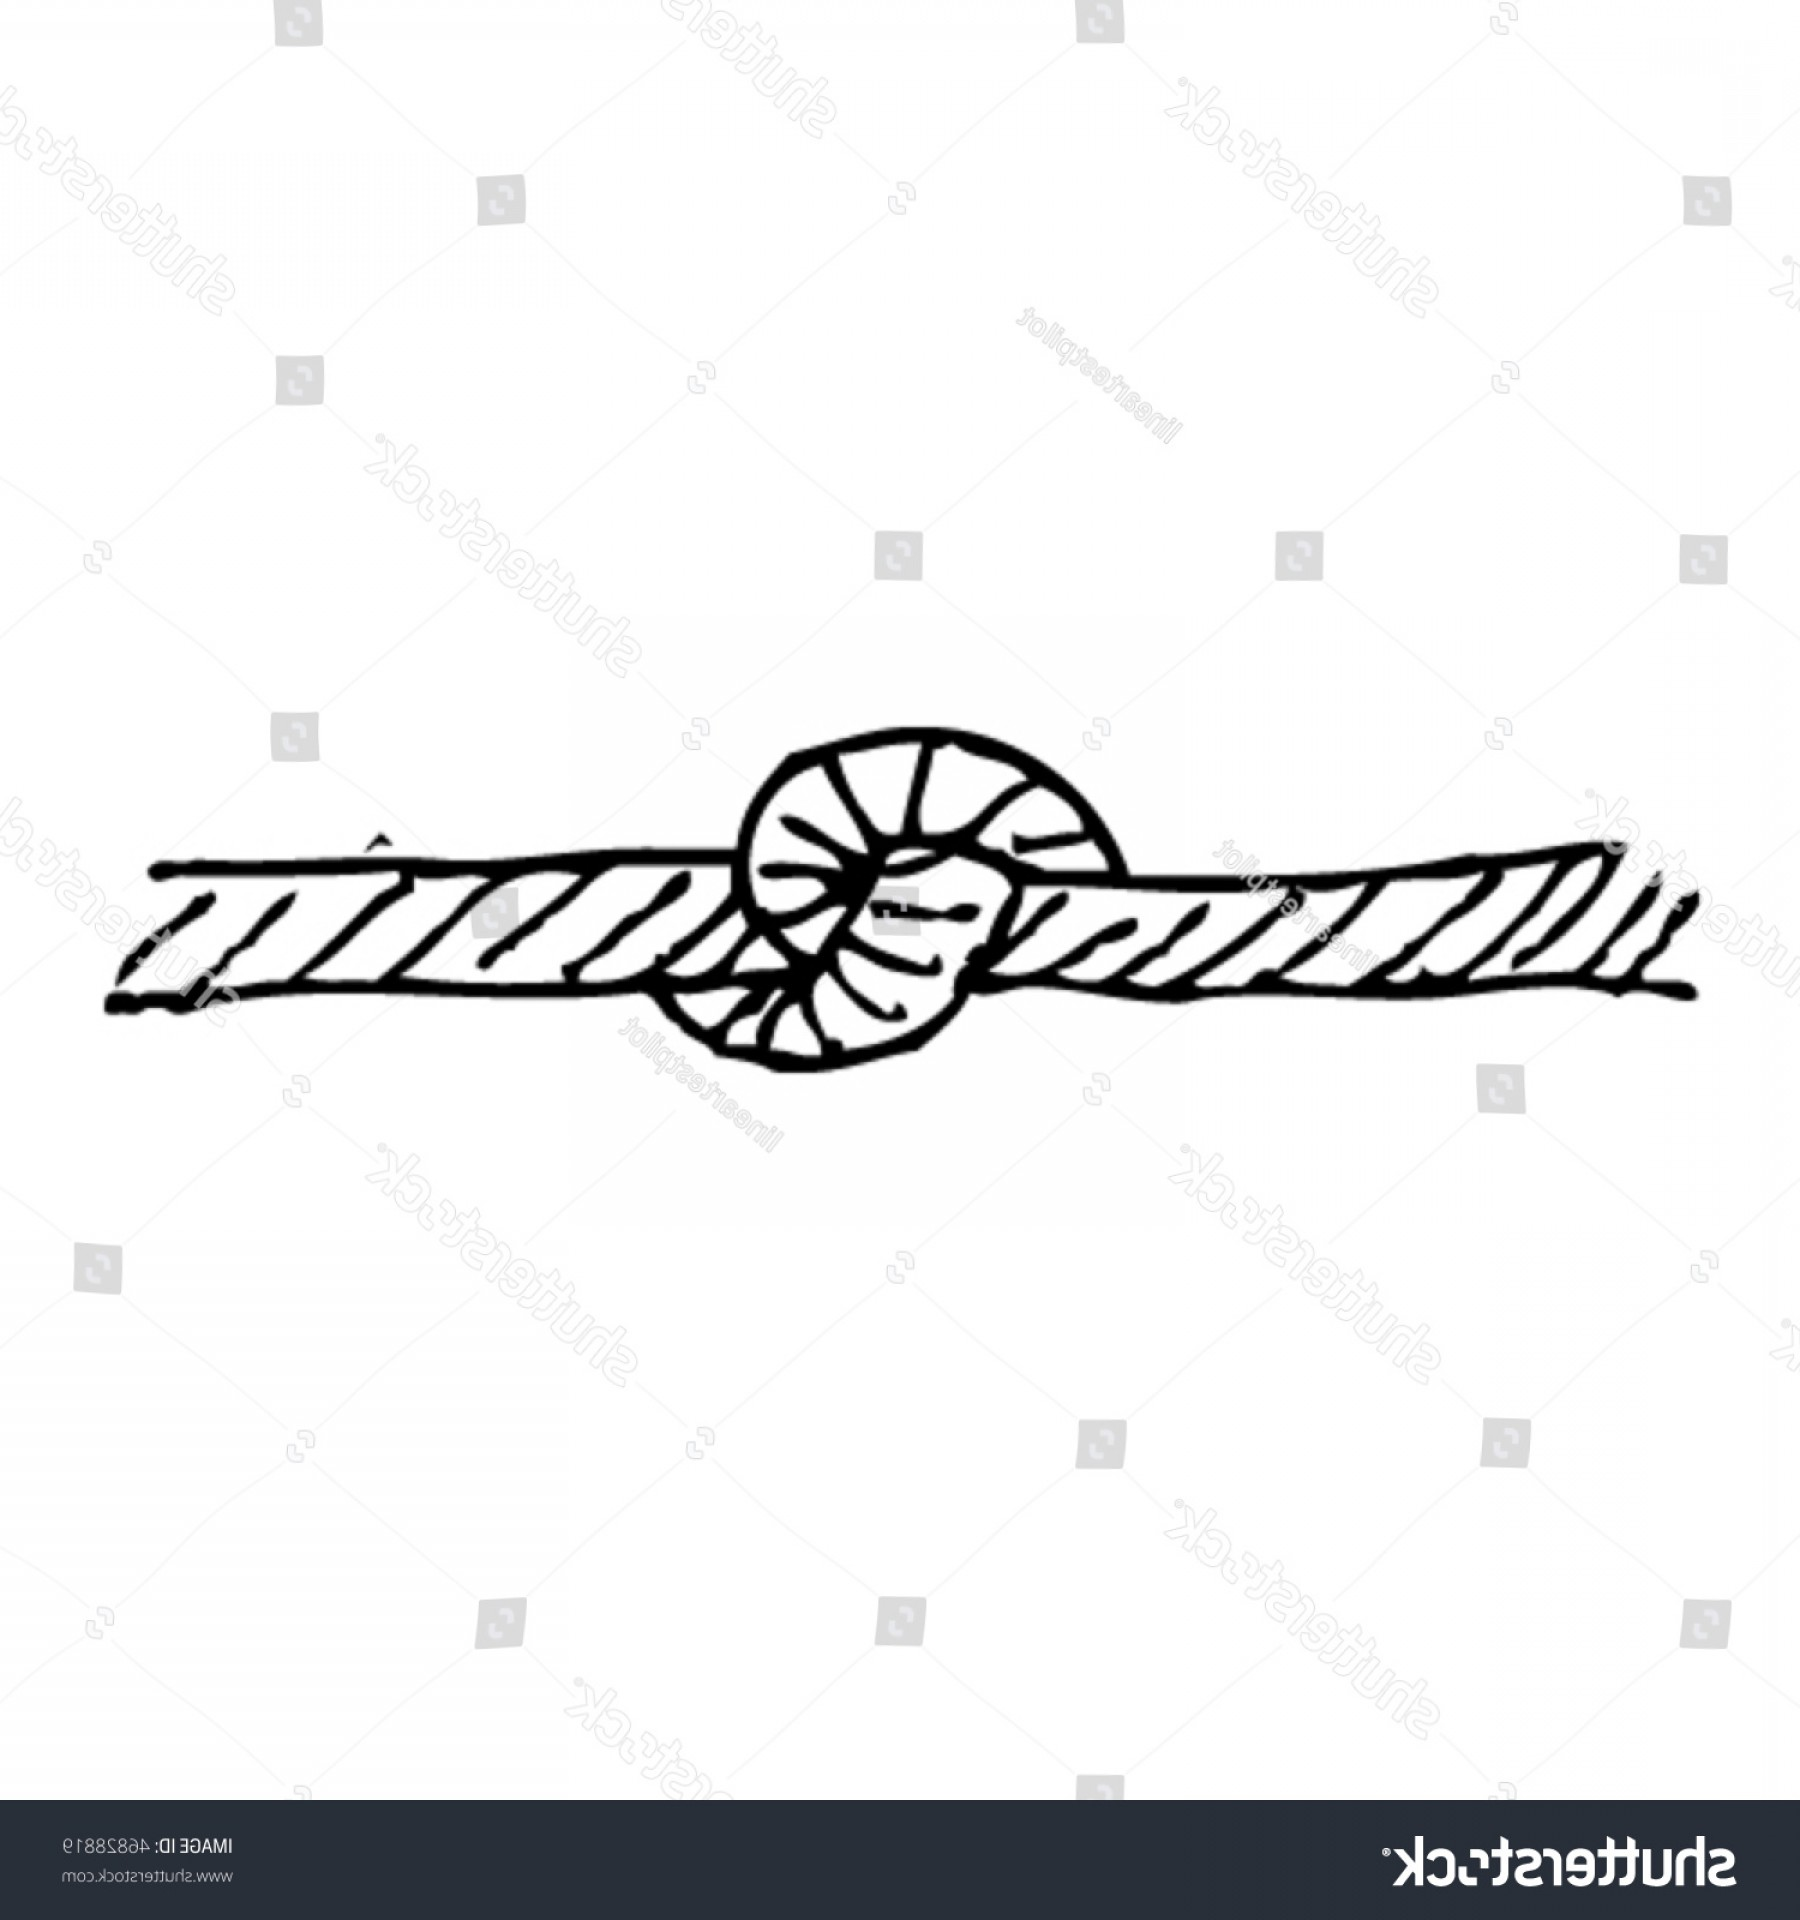 Scratch Y Drawing Vector: Scratchy Ink Drawing Knot Rope